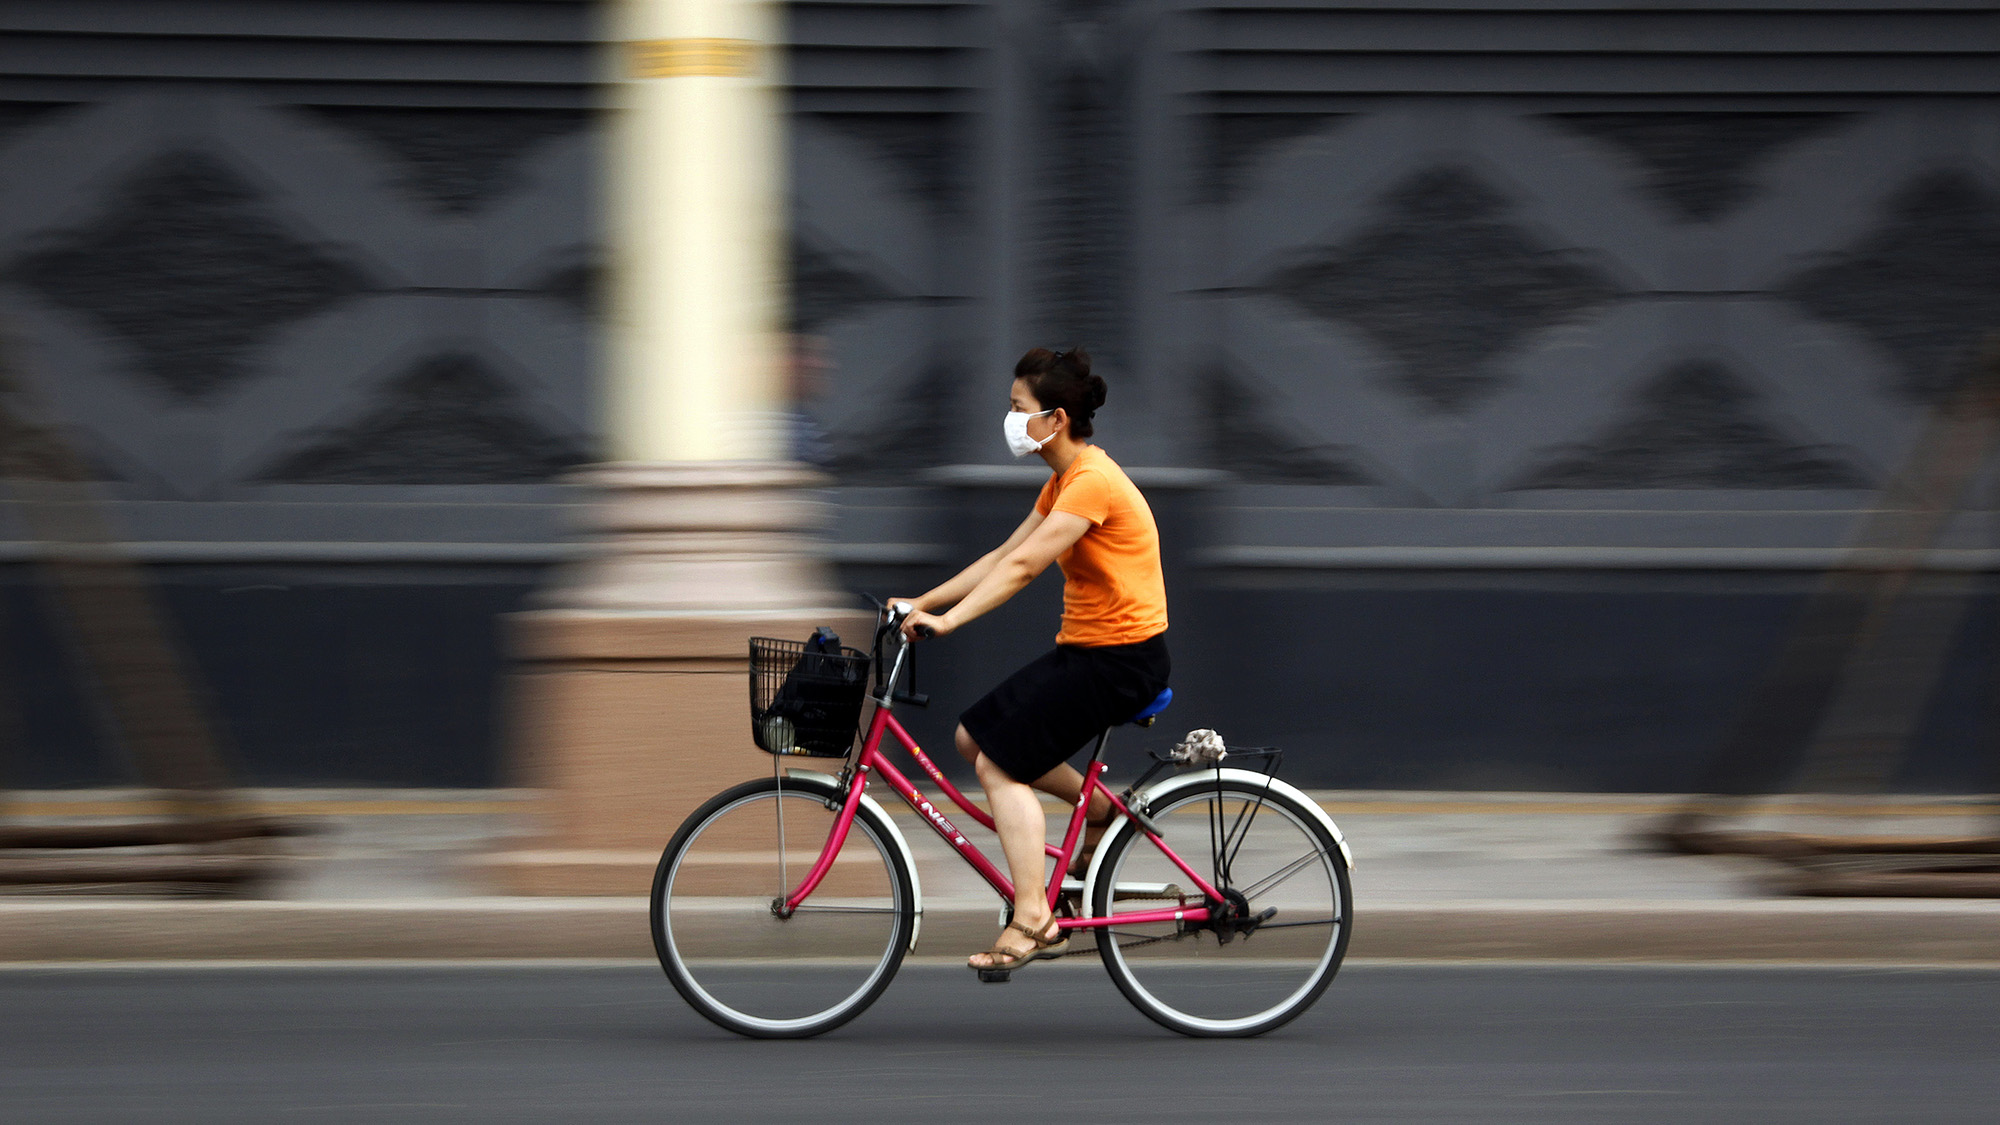 City rankings: How long can you cycle before the harm from